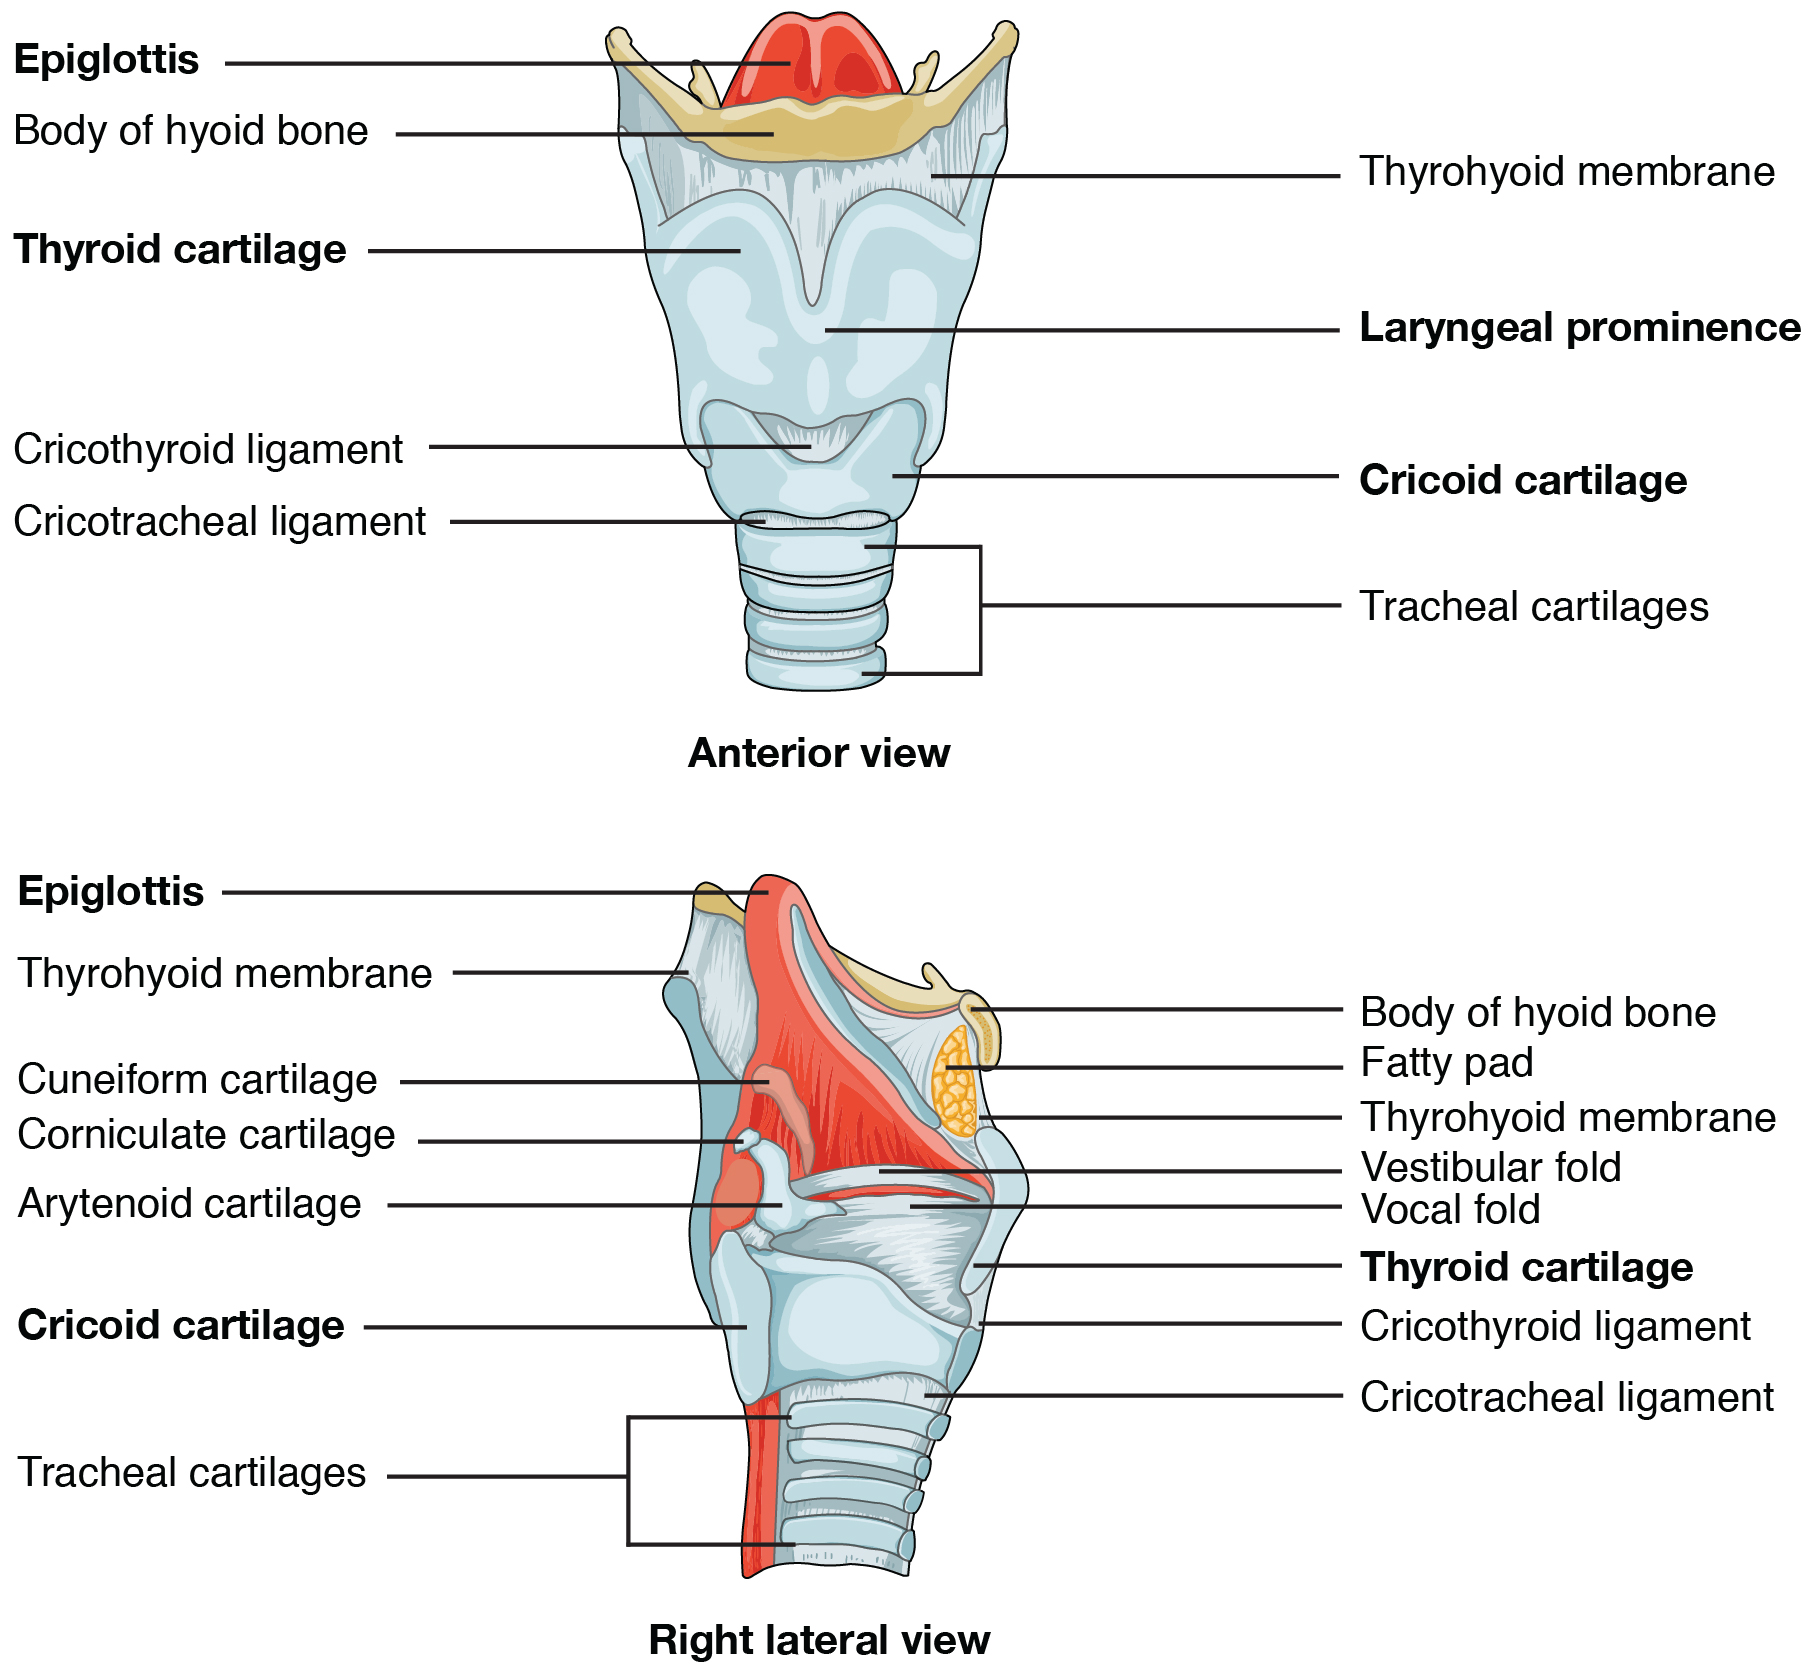 Anterior and right lateral view of the larynx. Image description available.